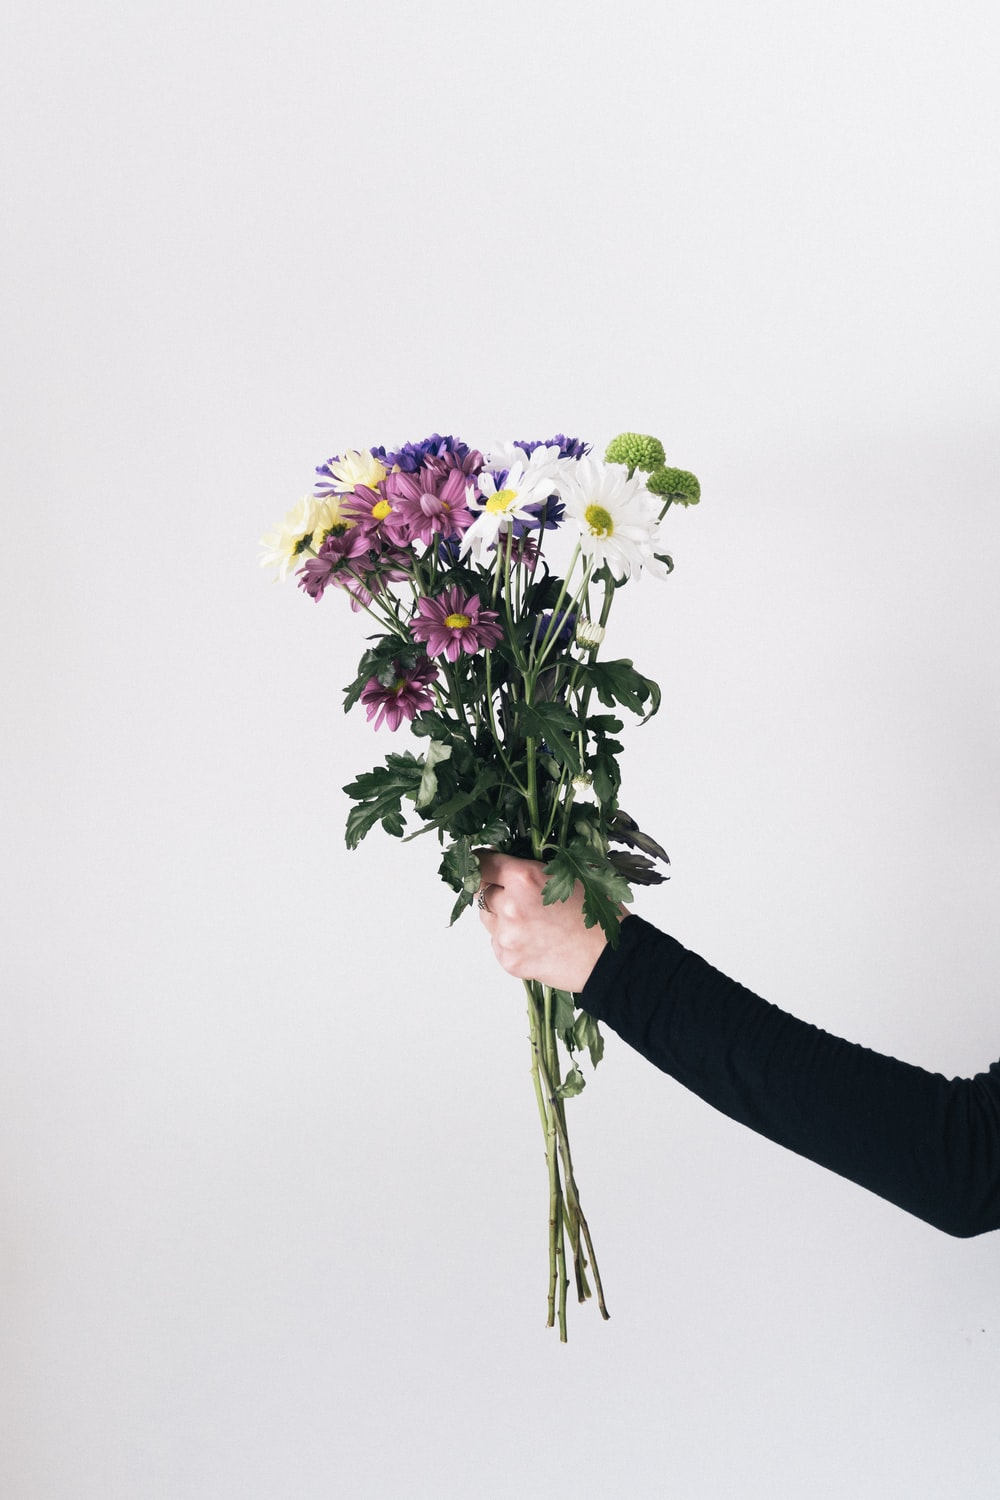 purple and white flowers in persons hand